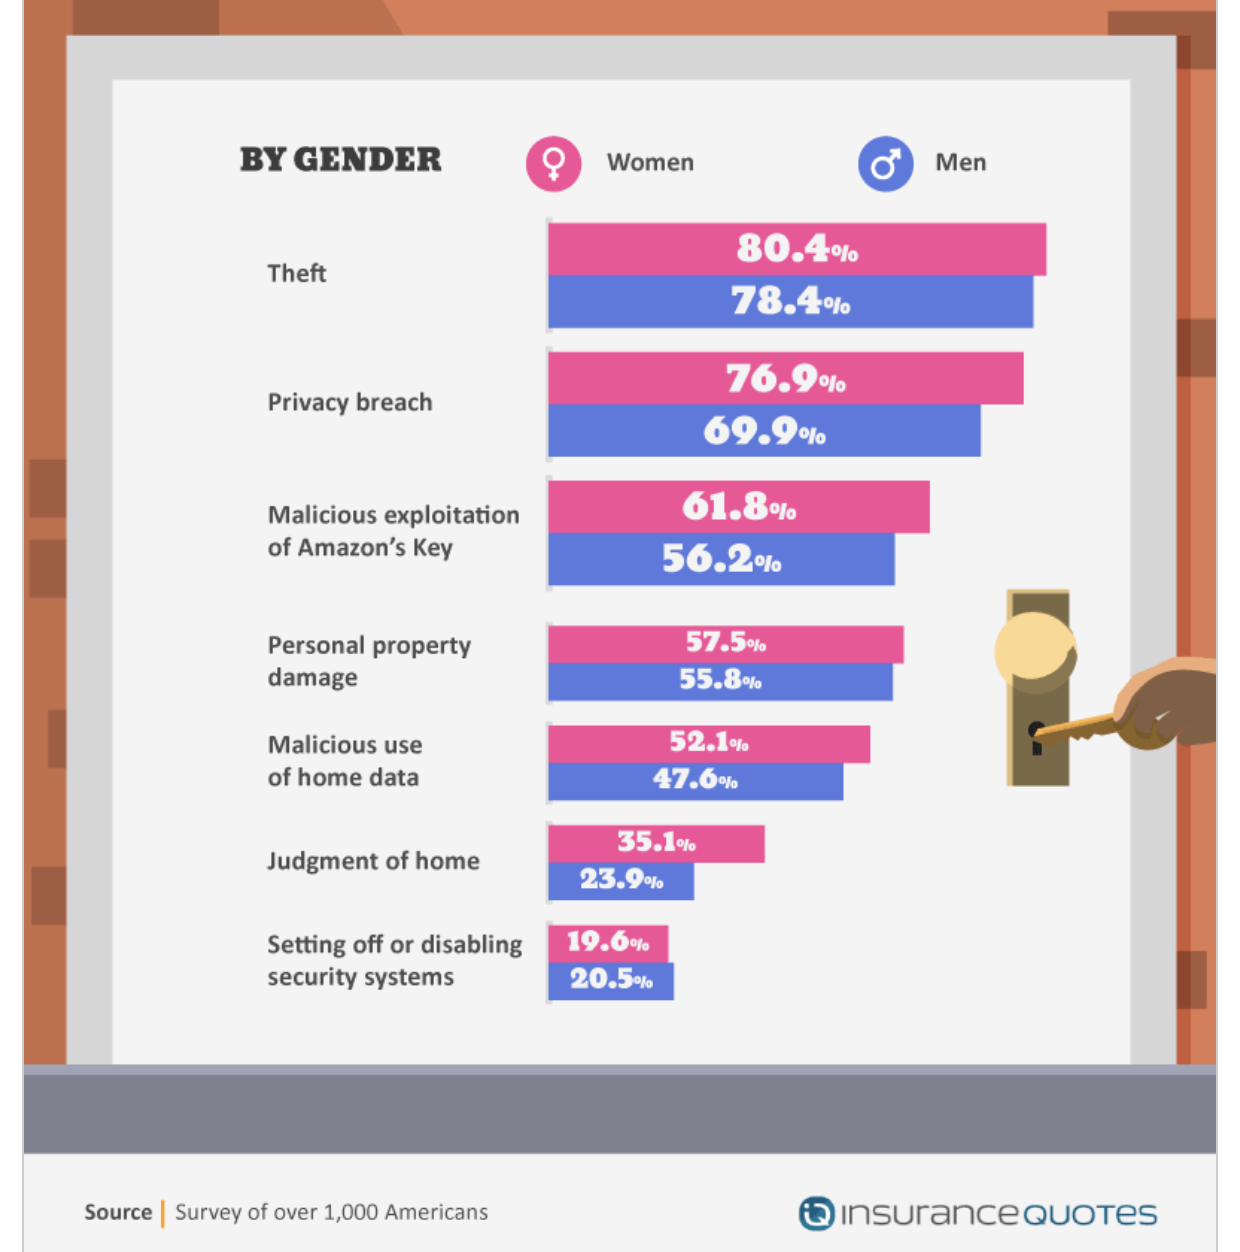 Top In-Home Delivery Concerns by Gender